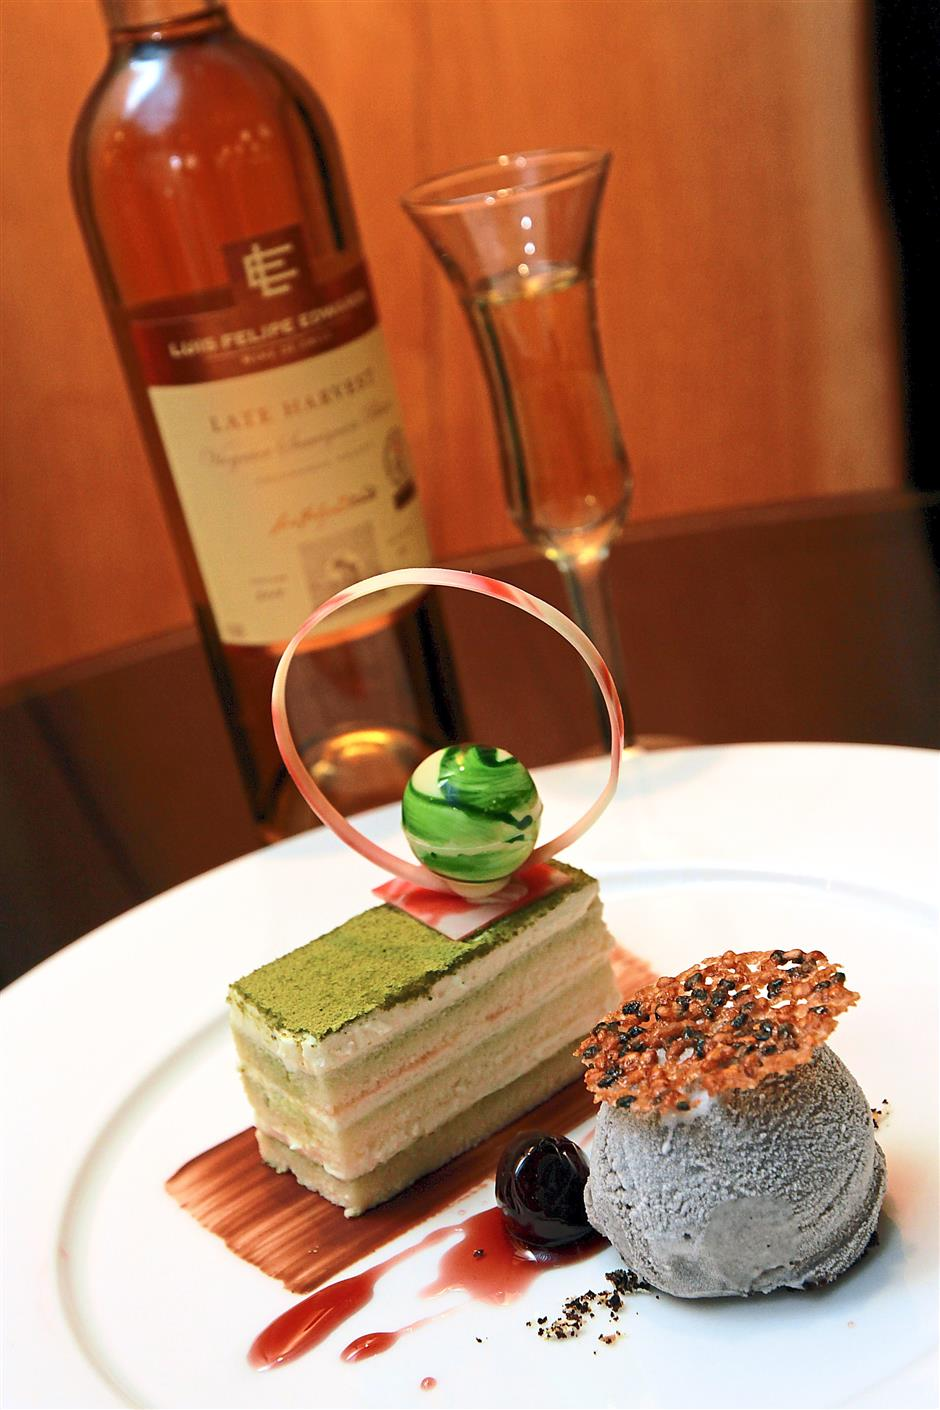 Simply great: For dessert, Green Tea Tiramisu, Amarena Cherry and Black Sesame Ice-Cream is paired with a Luise Felipe Edwards Reserva Late Harvest.